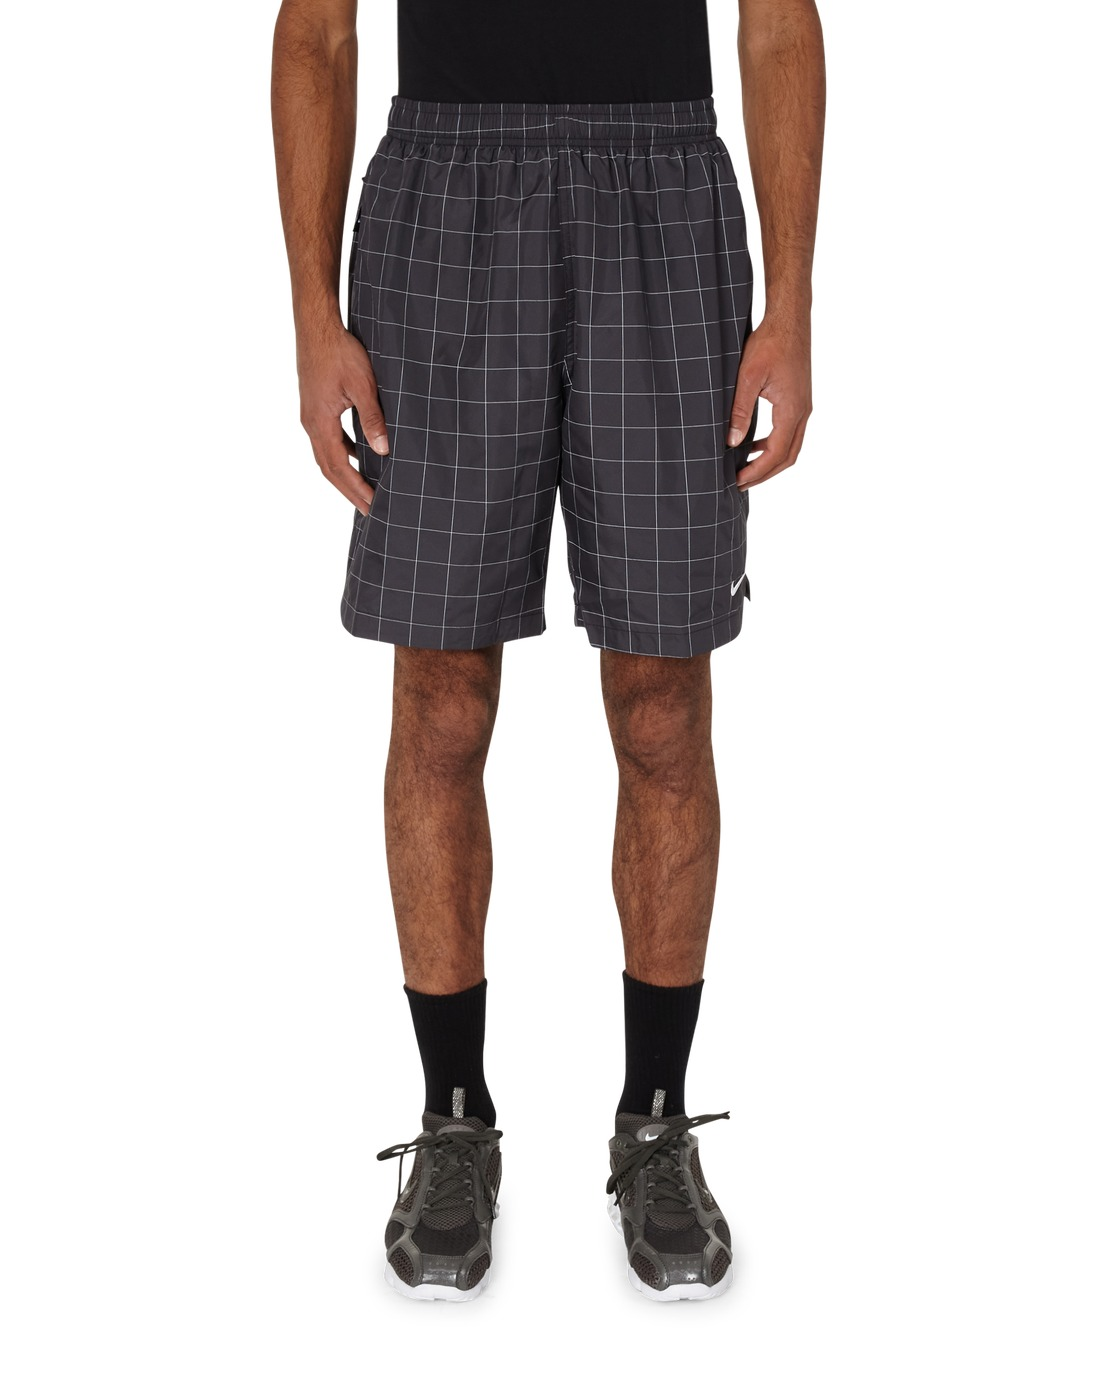 Nike Special Project Nrg Flash Shorts Black